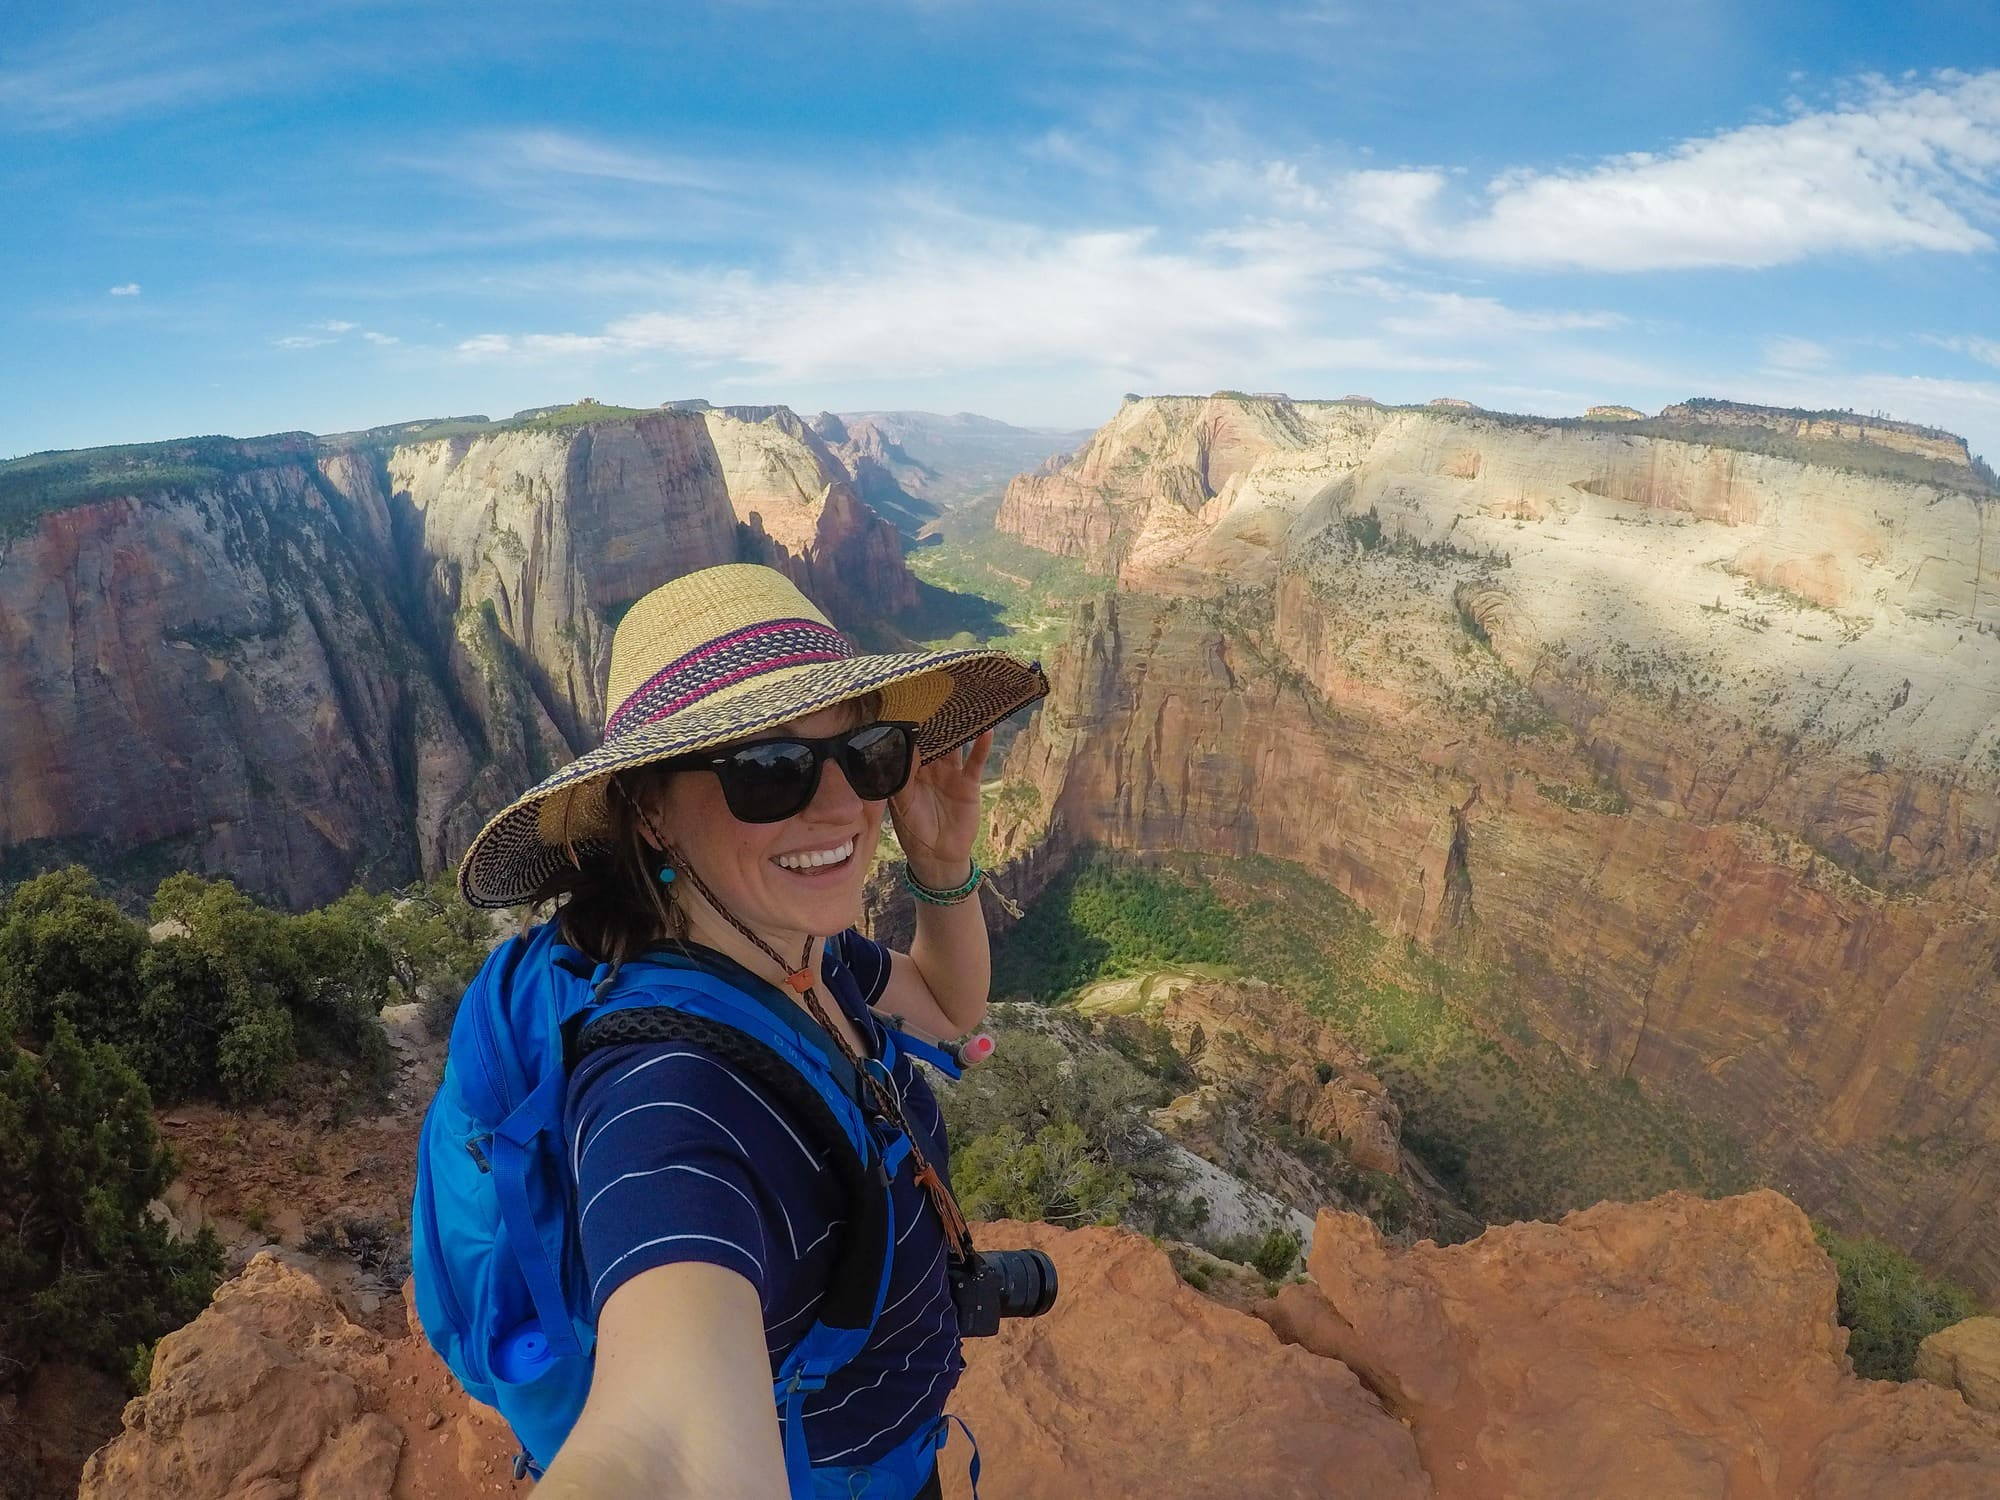 Get your gear and clothing dialed with this Southern Utah packing list so you're ready for anything on your adventure.